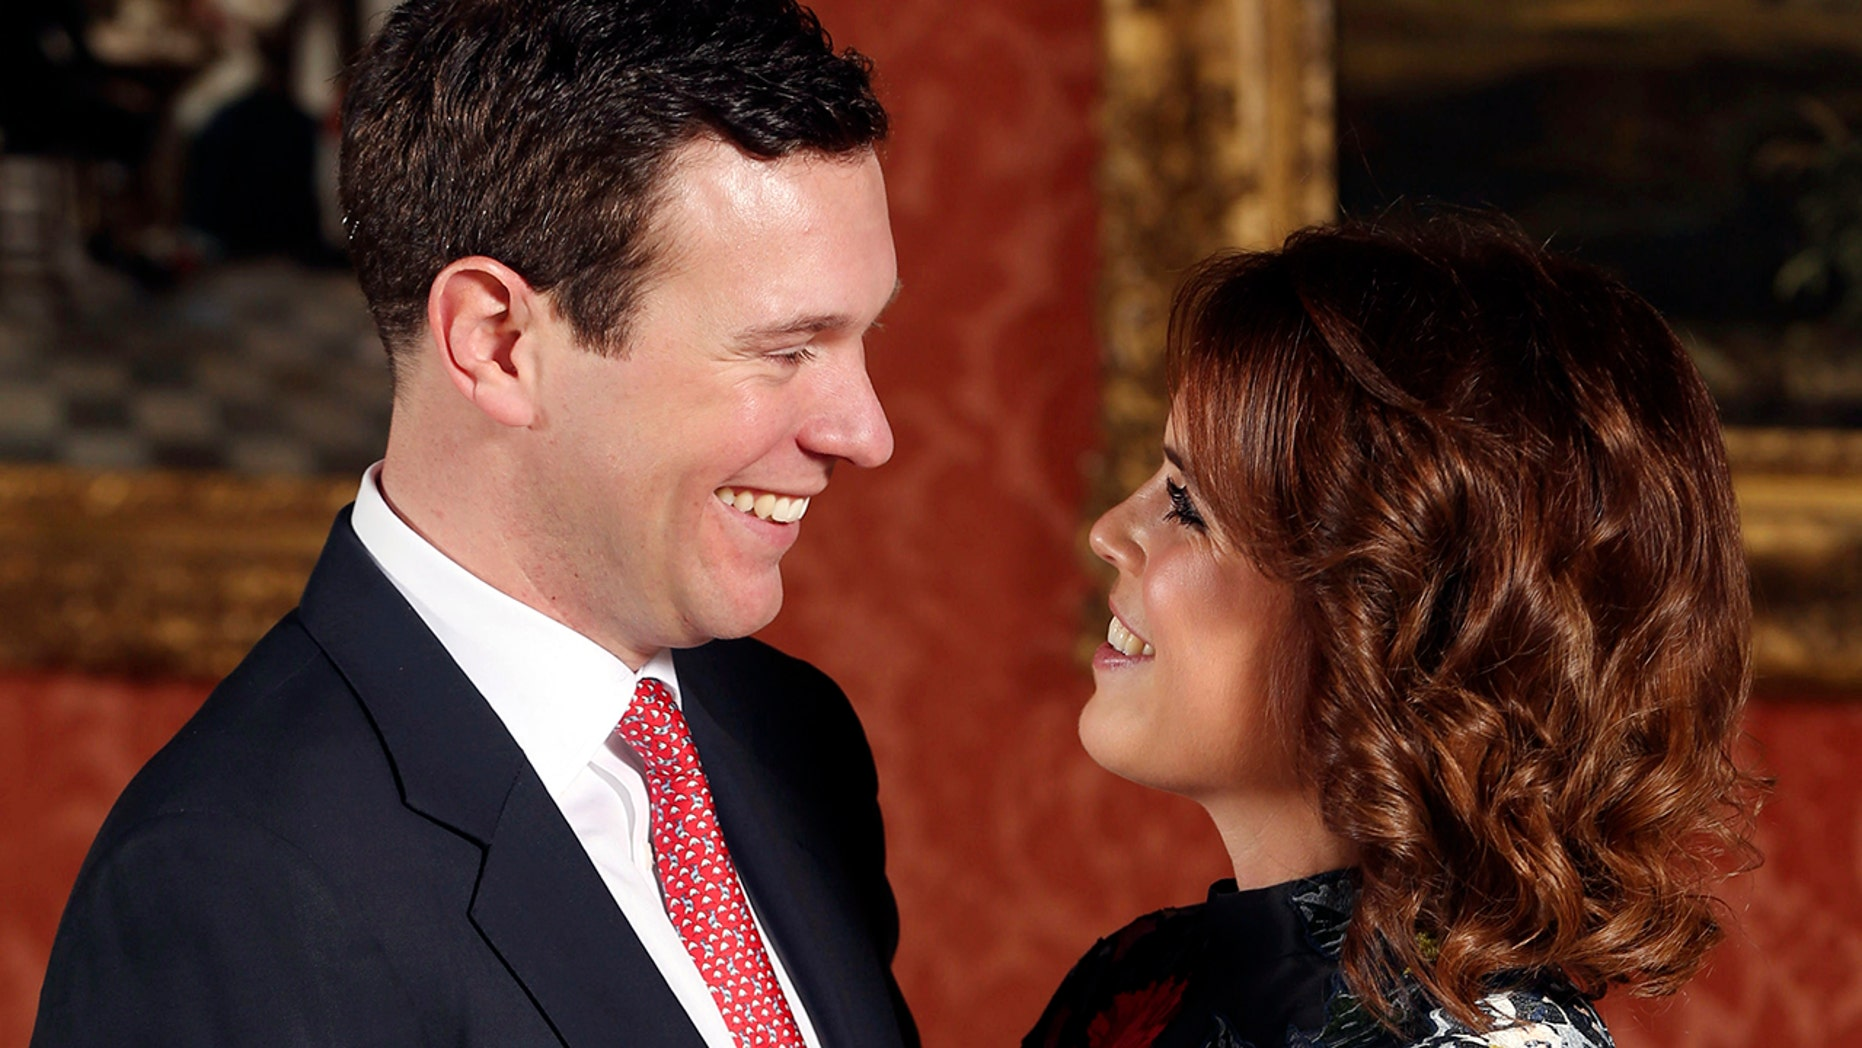 Petition Demands Royals Pay for Princess Eugenie's Wedding